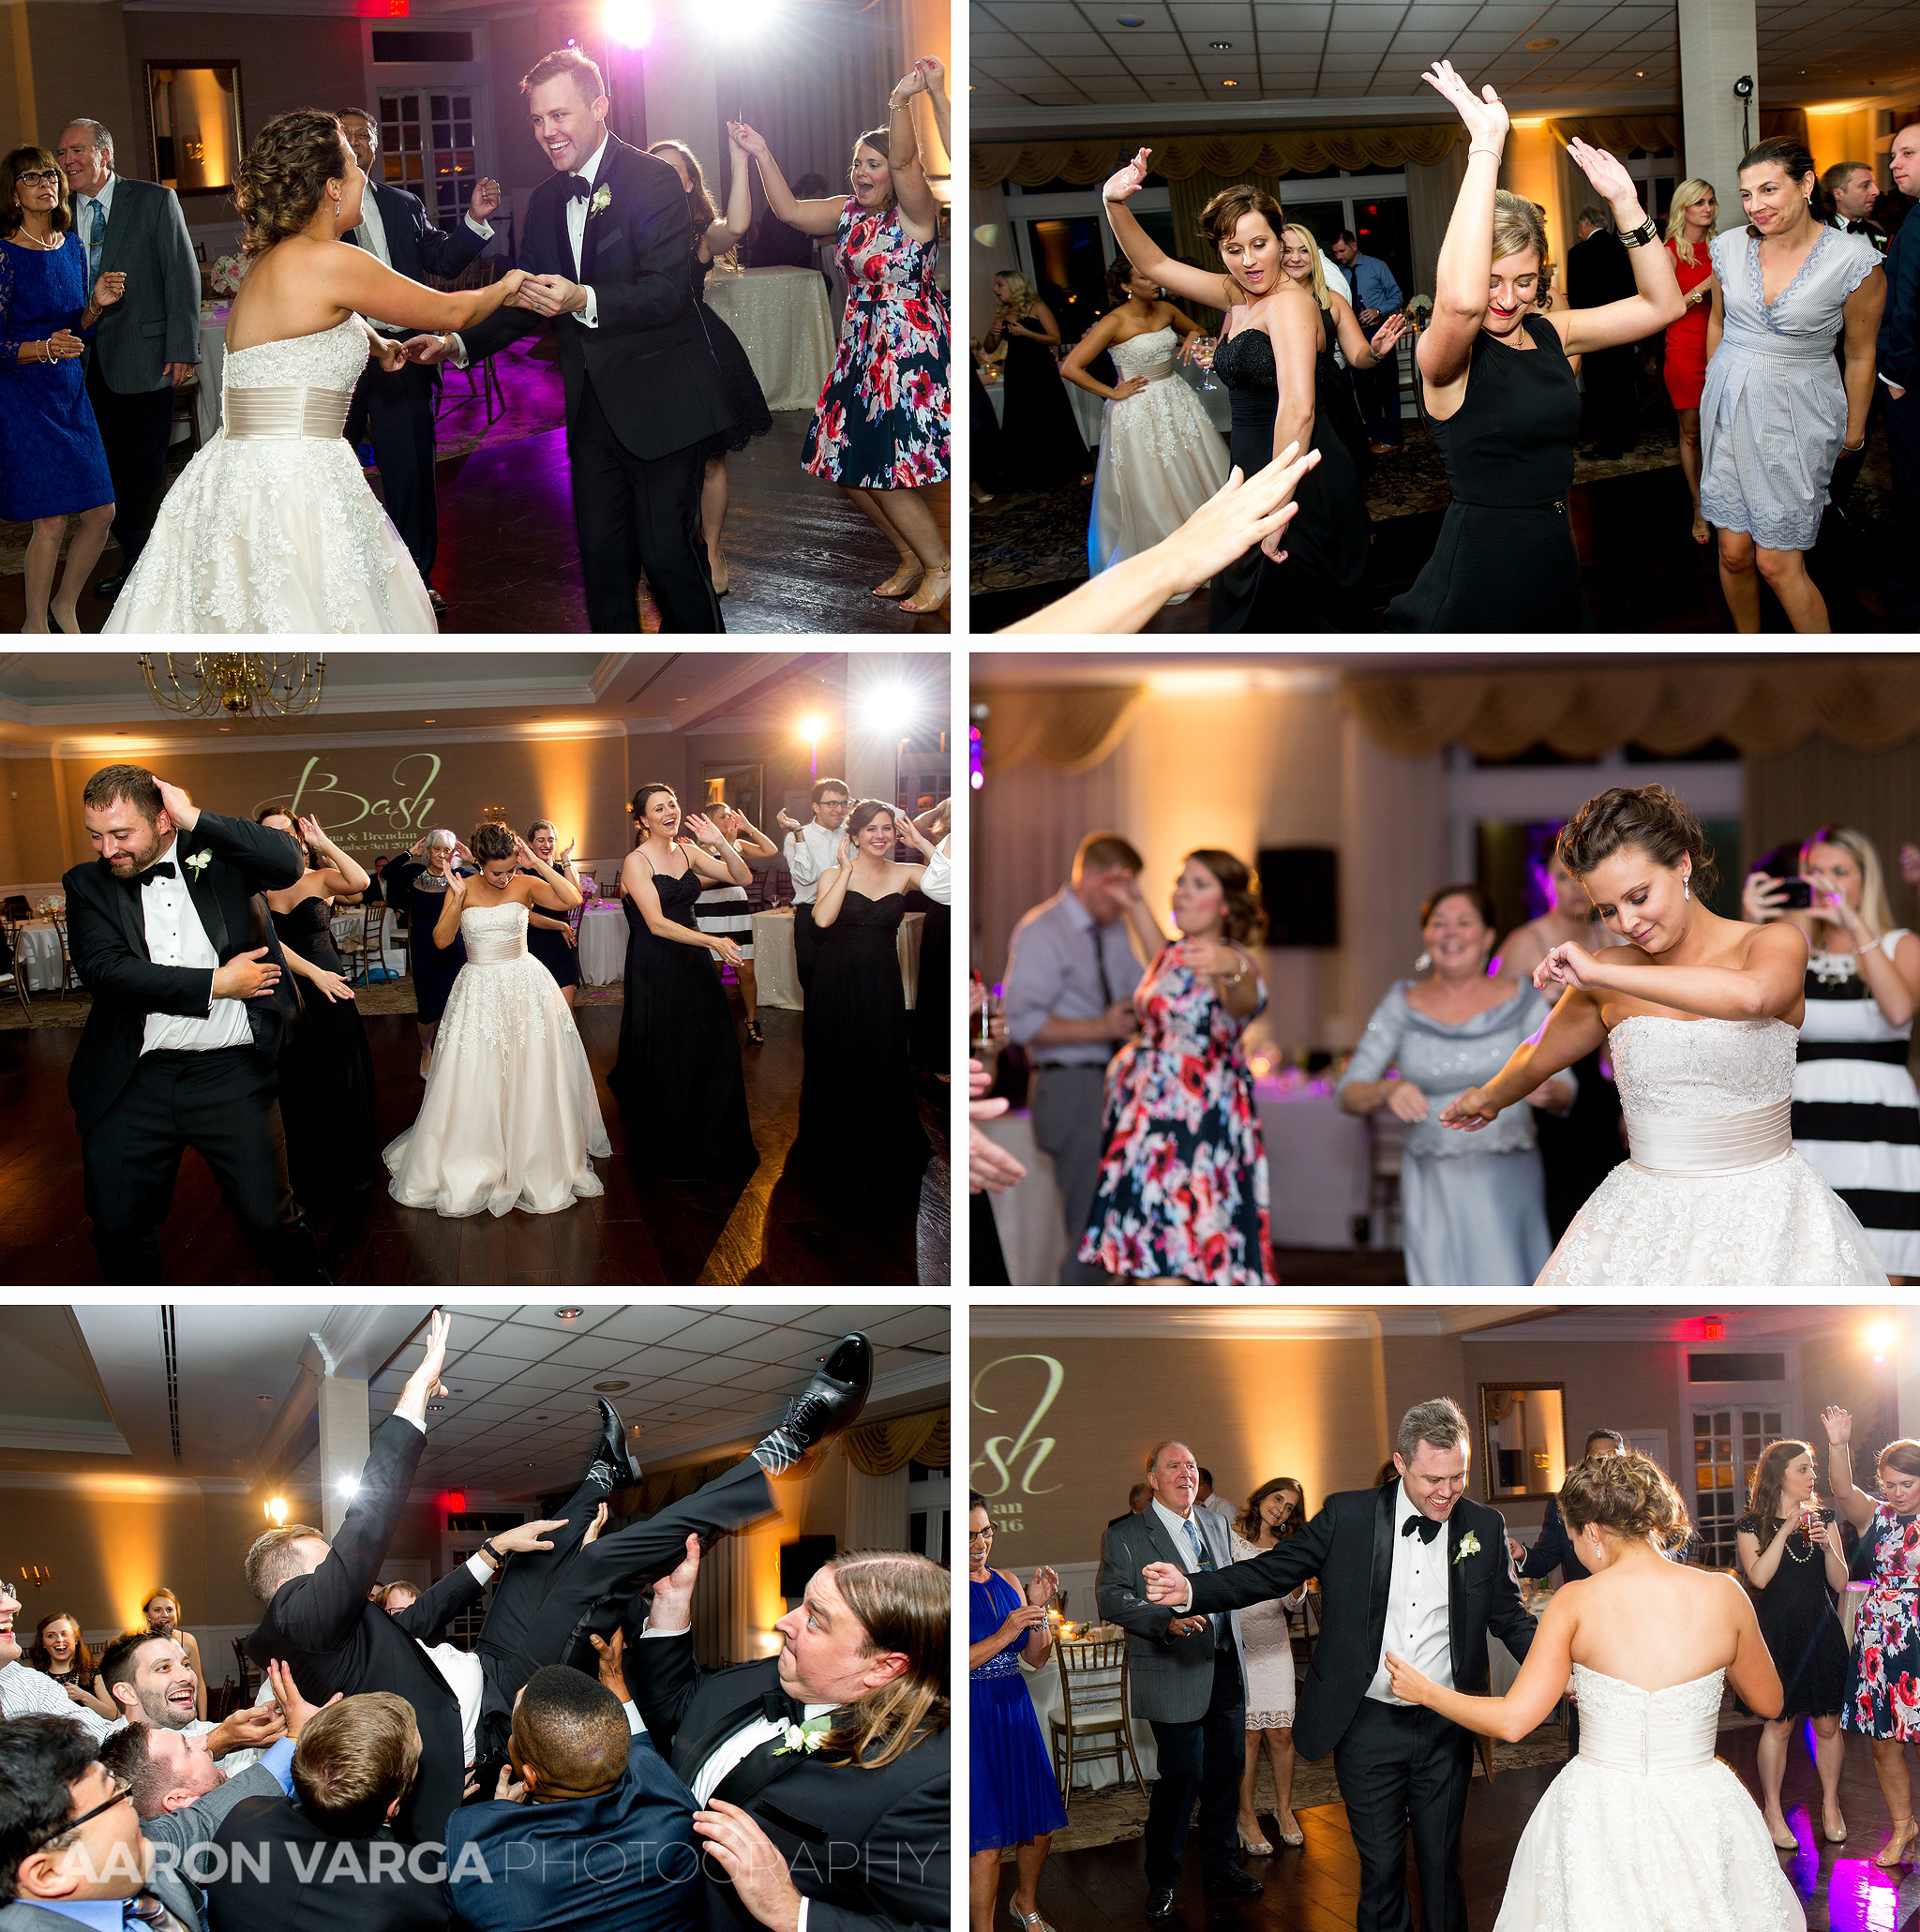 45 southpointe golf club wedding reception dancing - Dina + Brendan | Southpointe Golf Club Wedding Photos